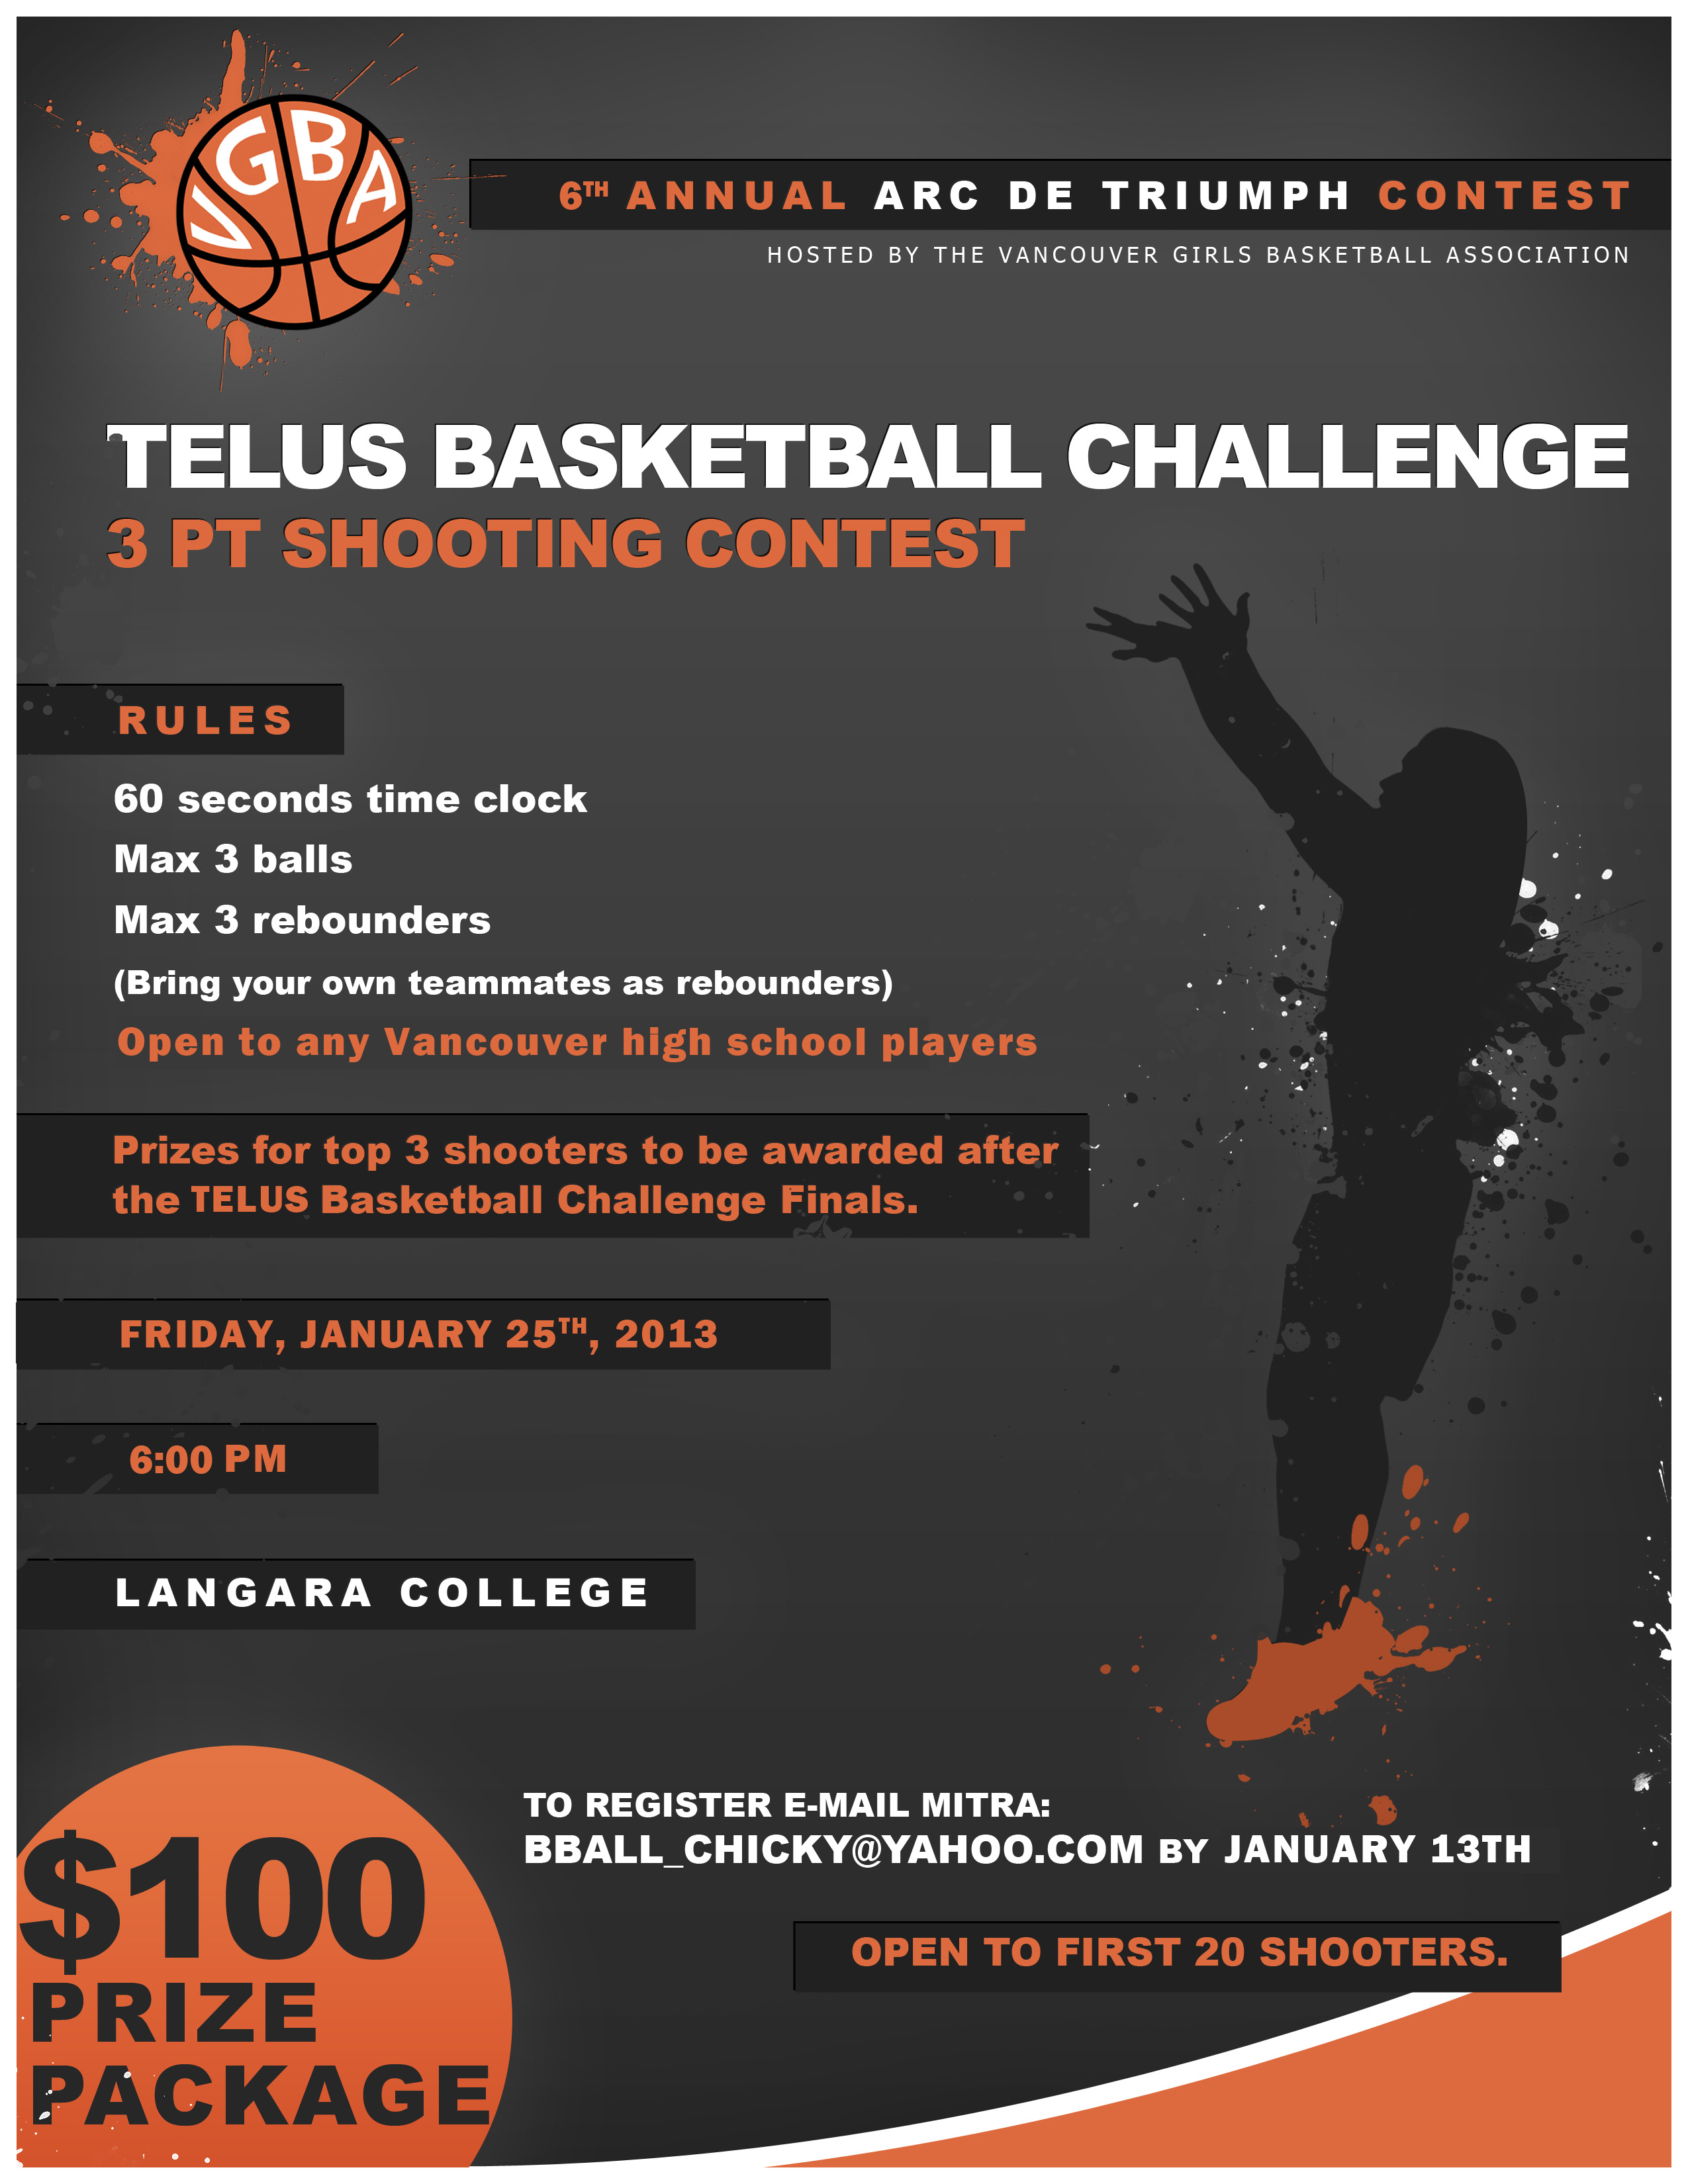 2013 TELUS Challenge 3pt Contest